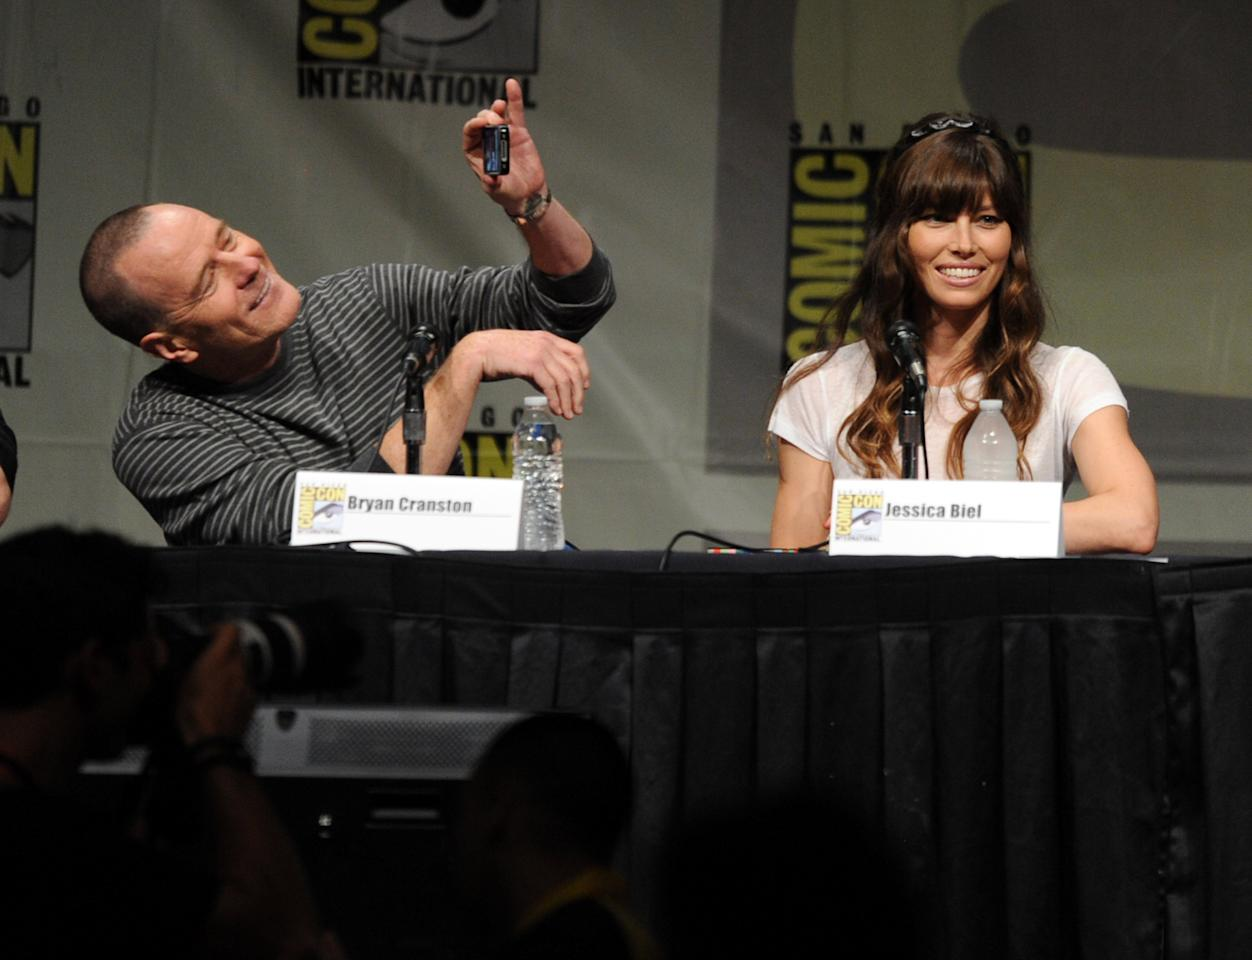 """SAN DIEGO, CA - JULY 13:  Actors Bryan Cranston (L) and Jessica Biel speak during Sony's """"Total Recall"""" panel during Comic-Con International 2012 at San Diego Convention Center on July 13, 2012 in San Diego, California.  (Photo by Kevin Winter/Getty Images)"""